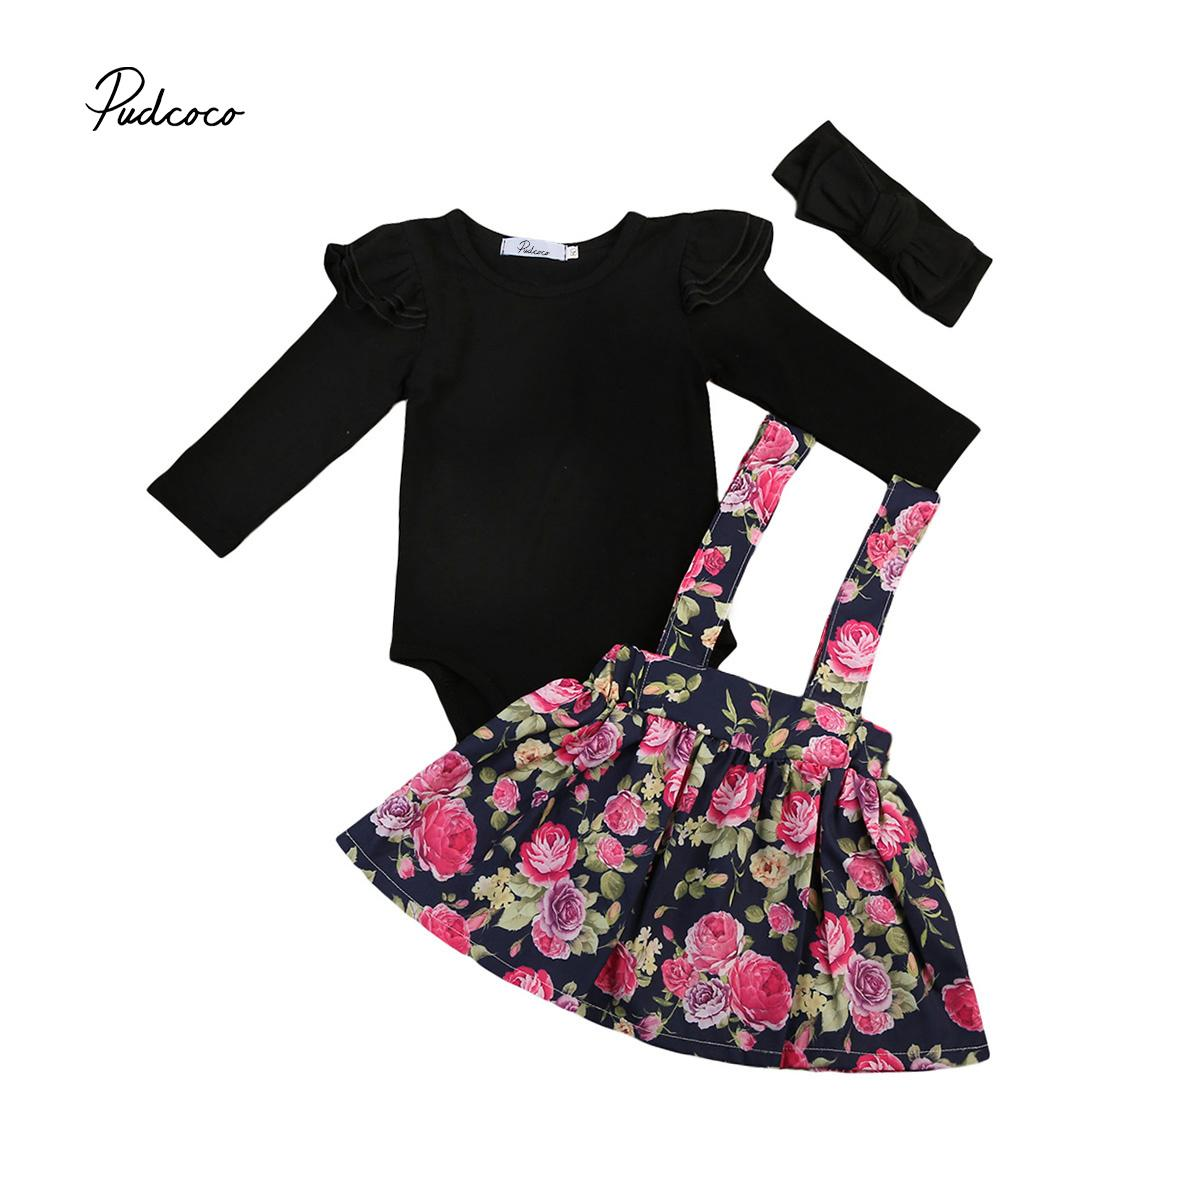 Adorable Baby Girl Clothes Set 0 24M Infant Girl Black Long Sleeve Romper  Floral Skirt Outfits Set Baby Girl Autumn Costume Y18120303 UK 2019 From ... 68c648ca6420